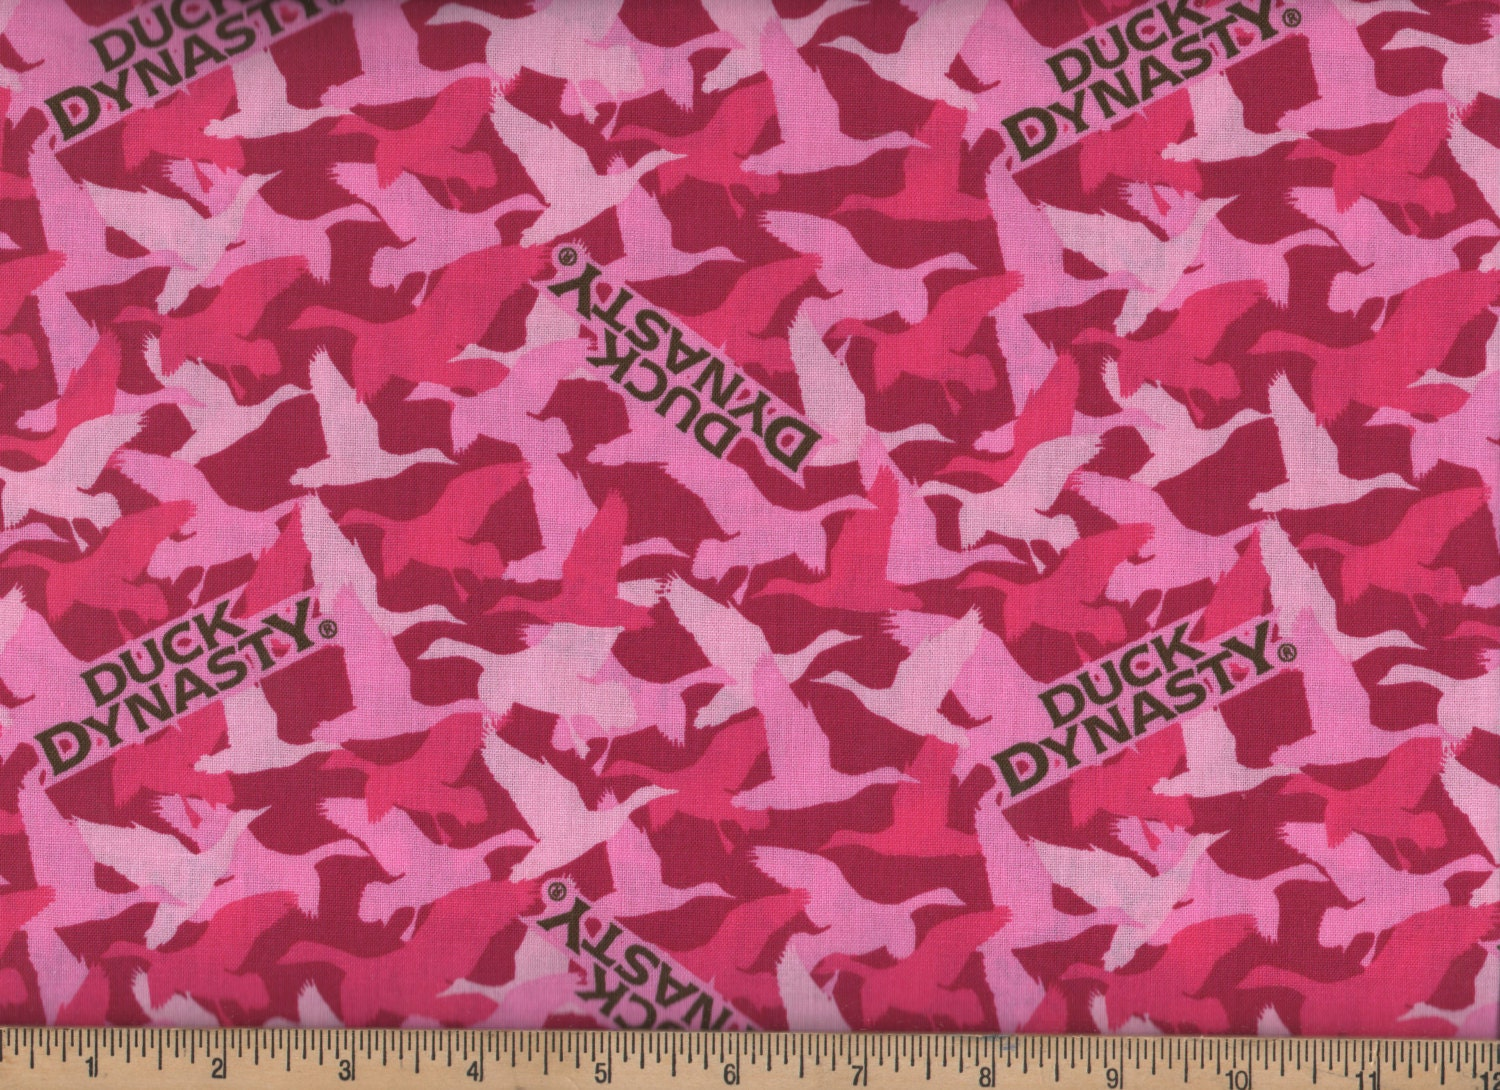 Duck Dynasty Camo Pink Cotton Camouflage Fabric By the Yard   Etsy